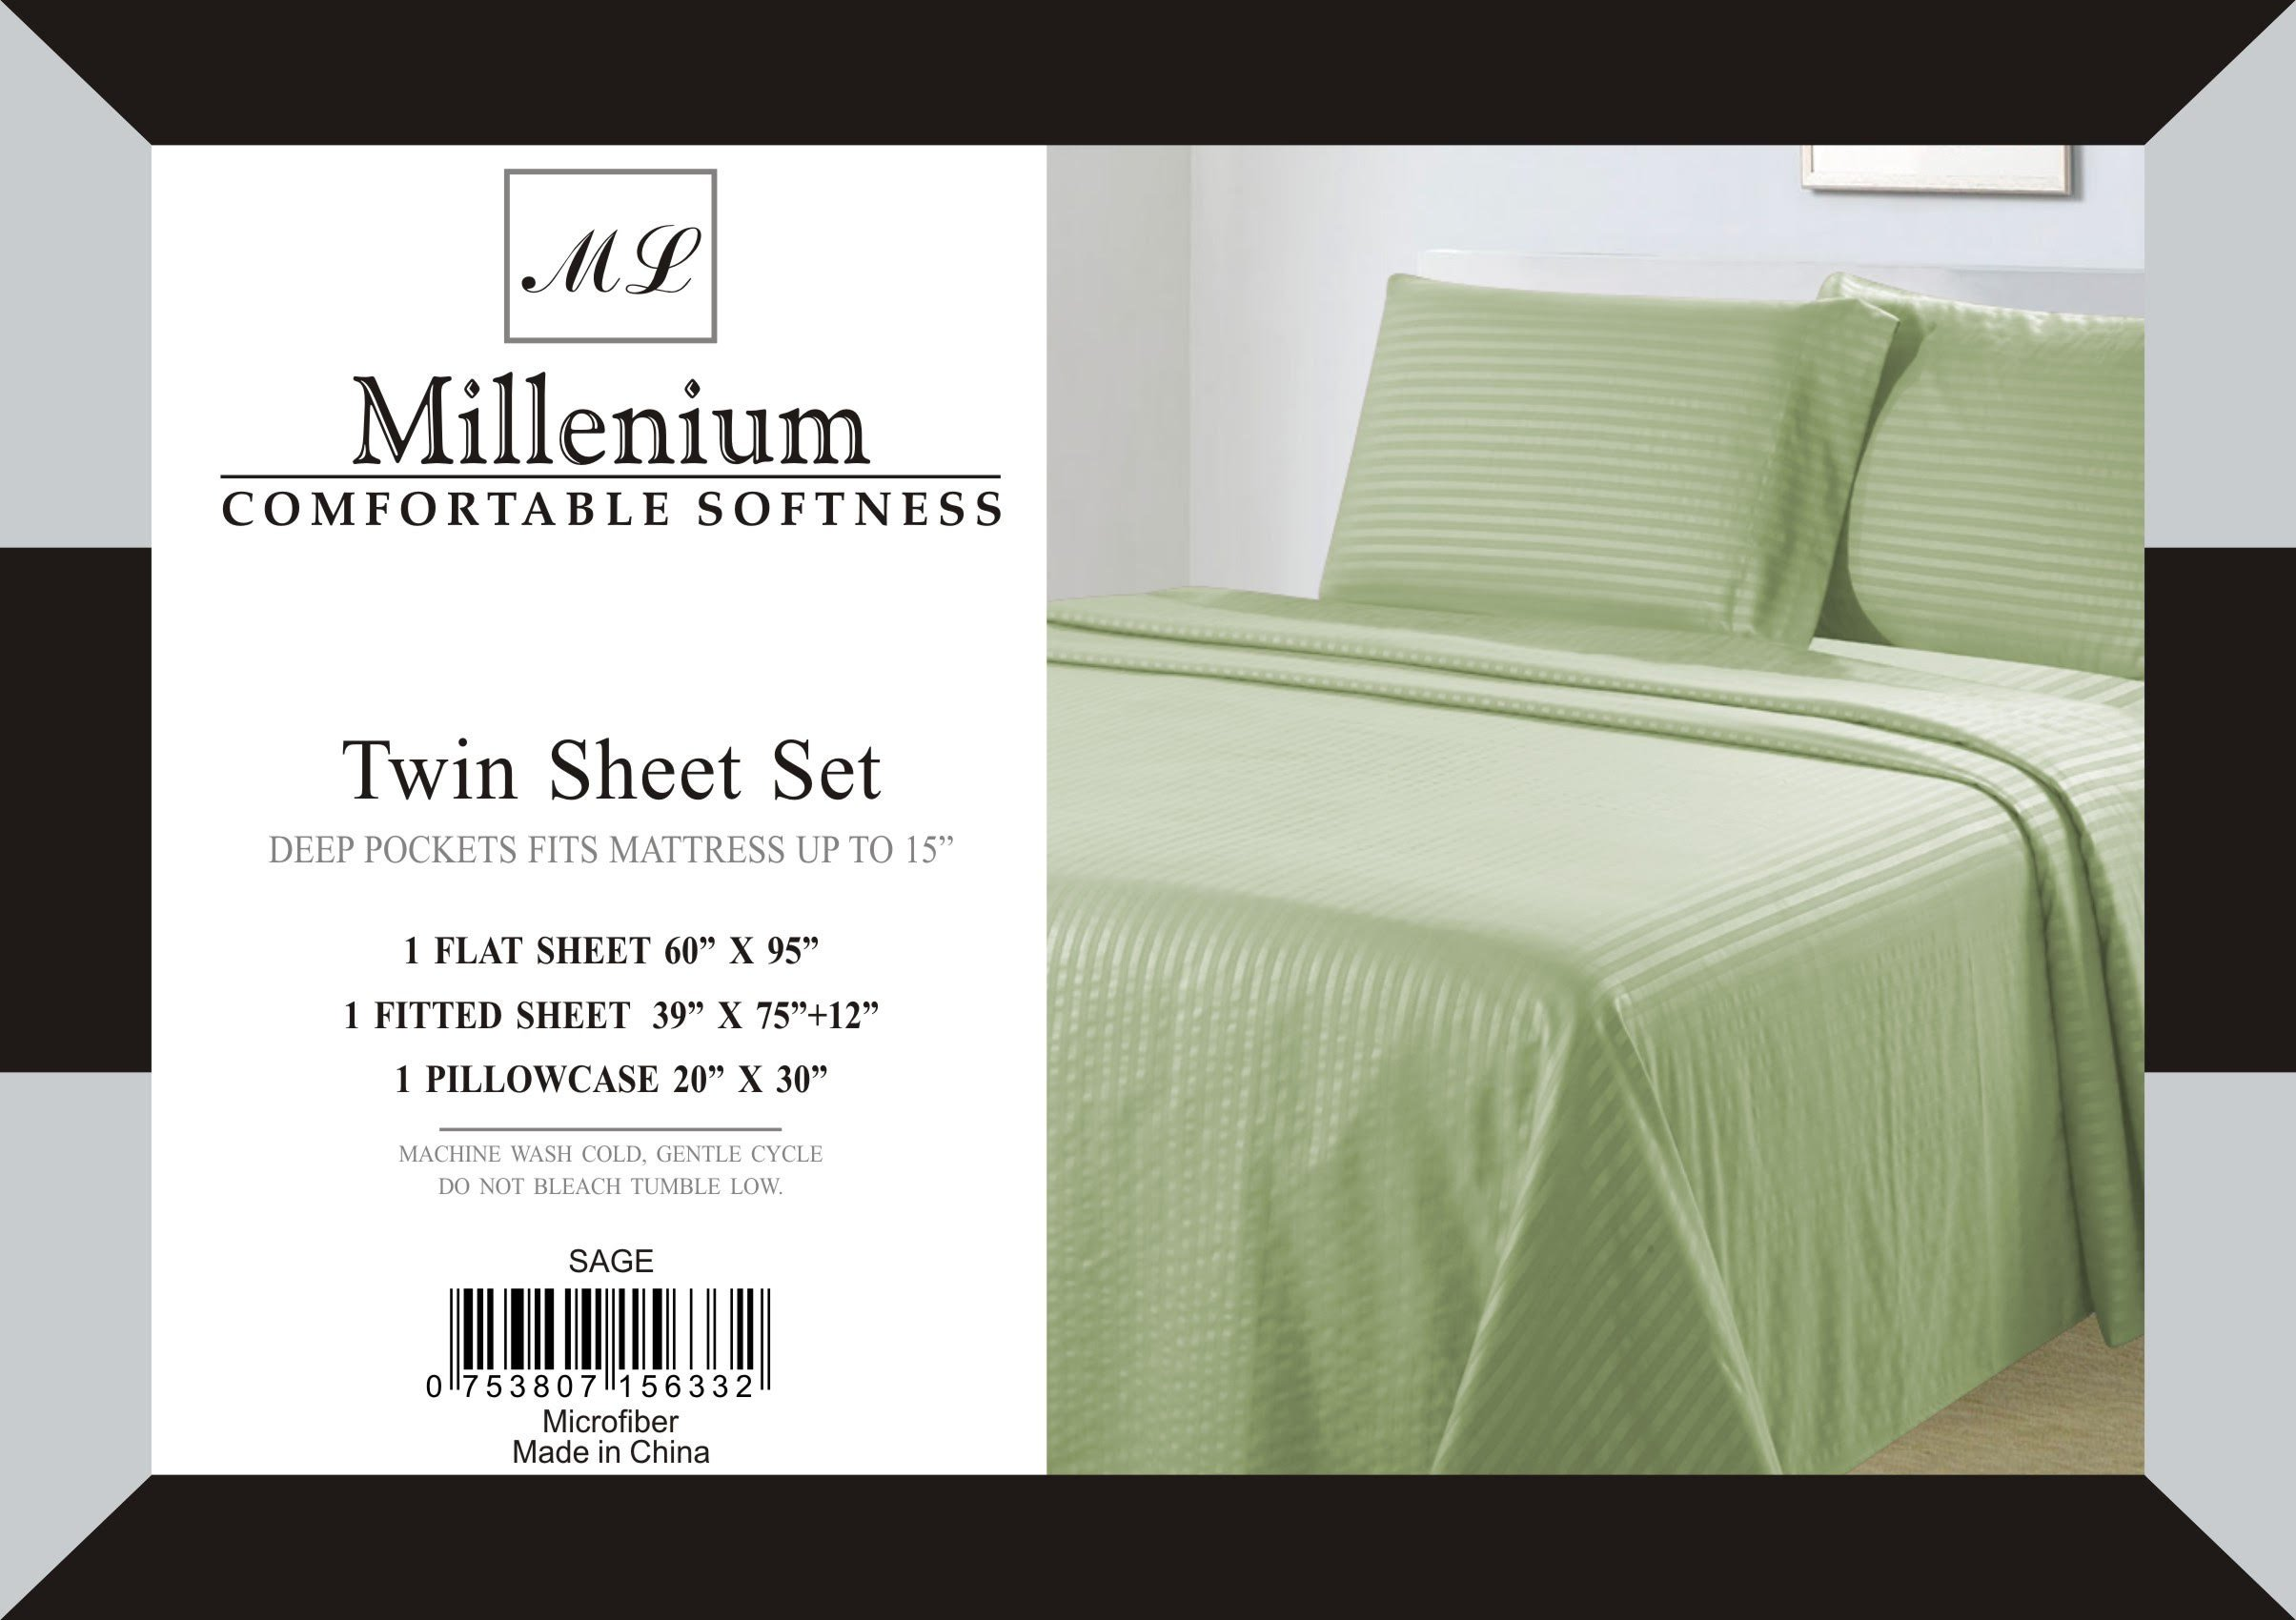 Millenium Linen  Twin Size Bed Sheet Set - Sage - 1600 Series 3 Piece - Deep Pocket  -  Cool and Wrinkle Fre e - 1 Fitted, 1 Flat, 1 Pillow Case